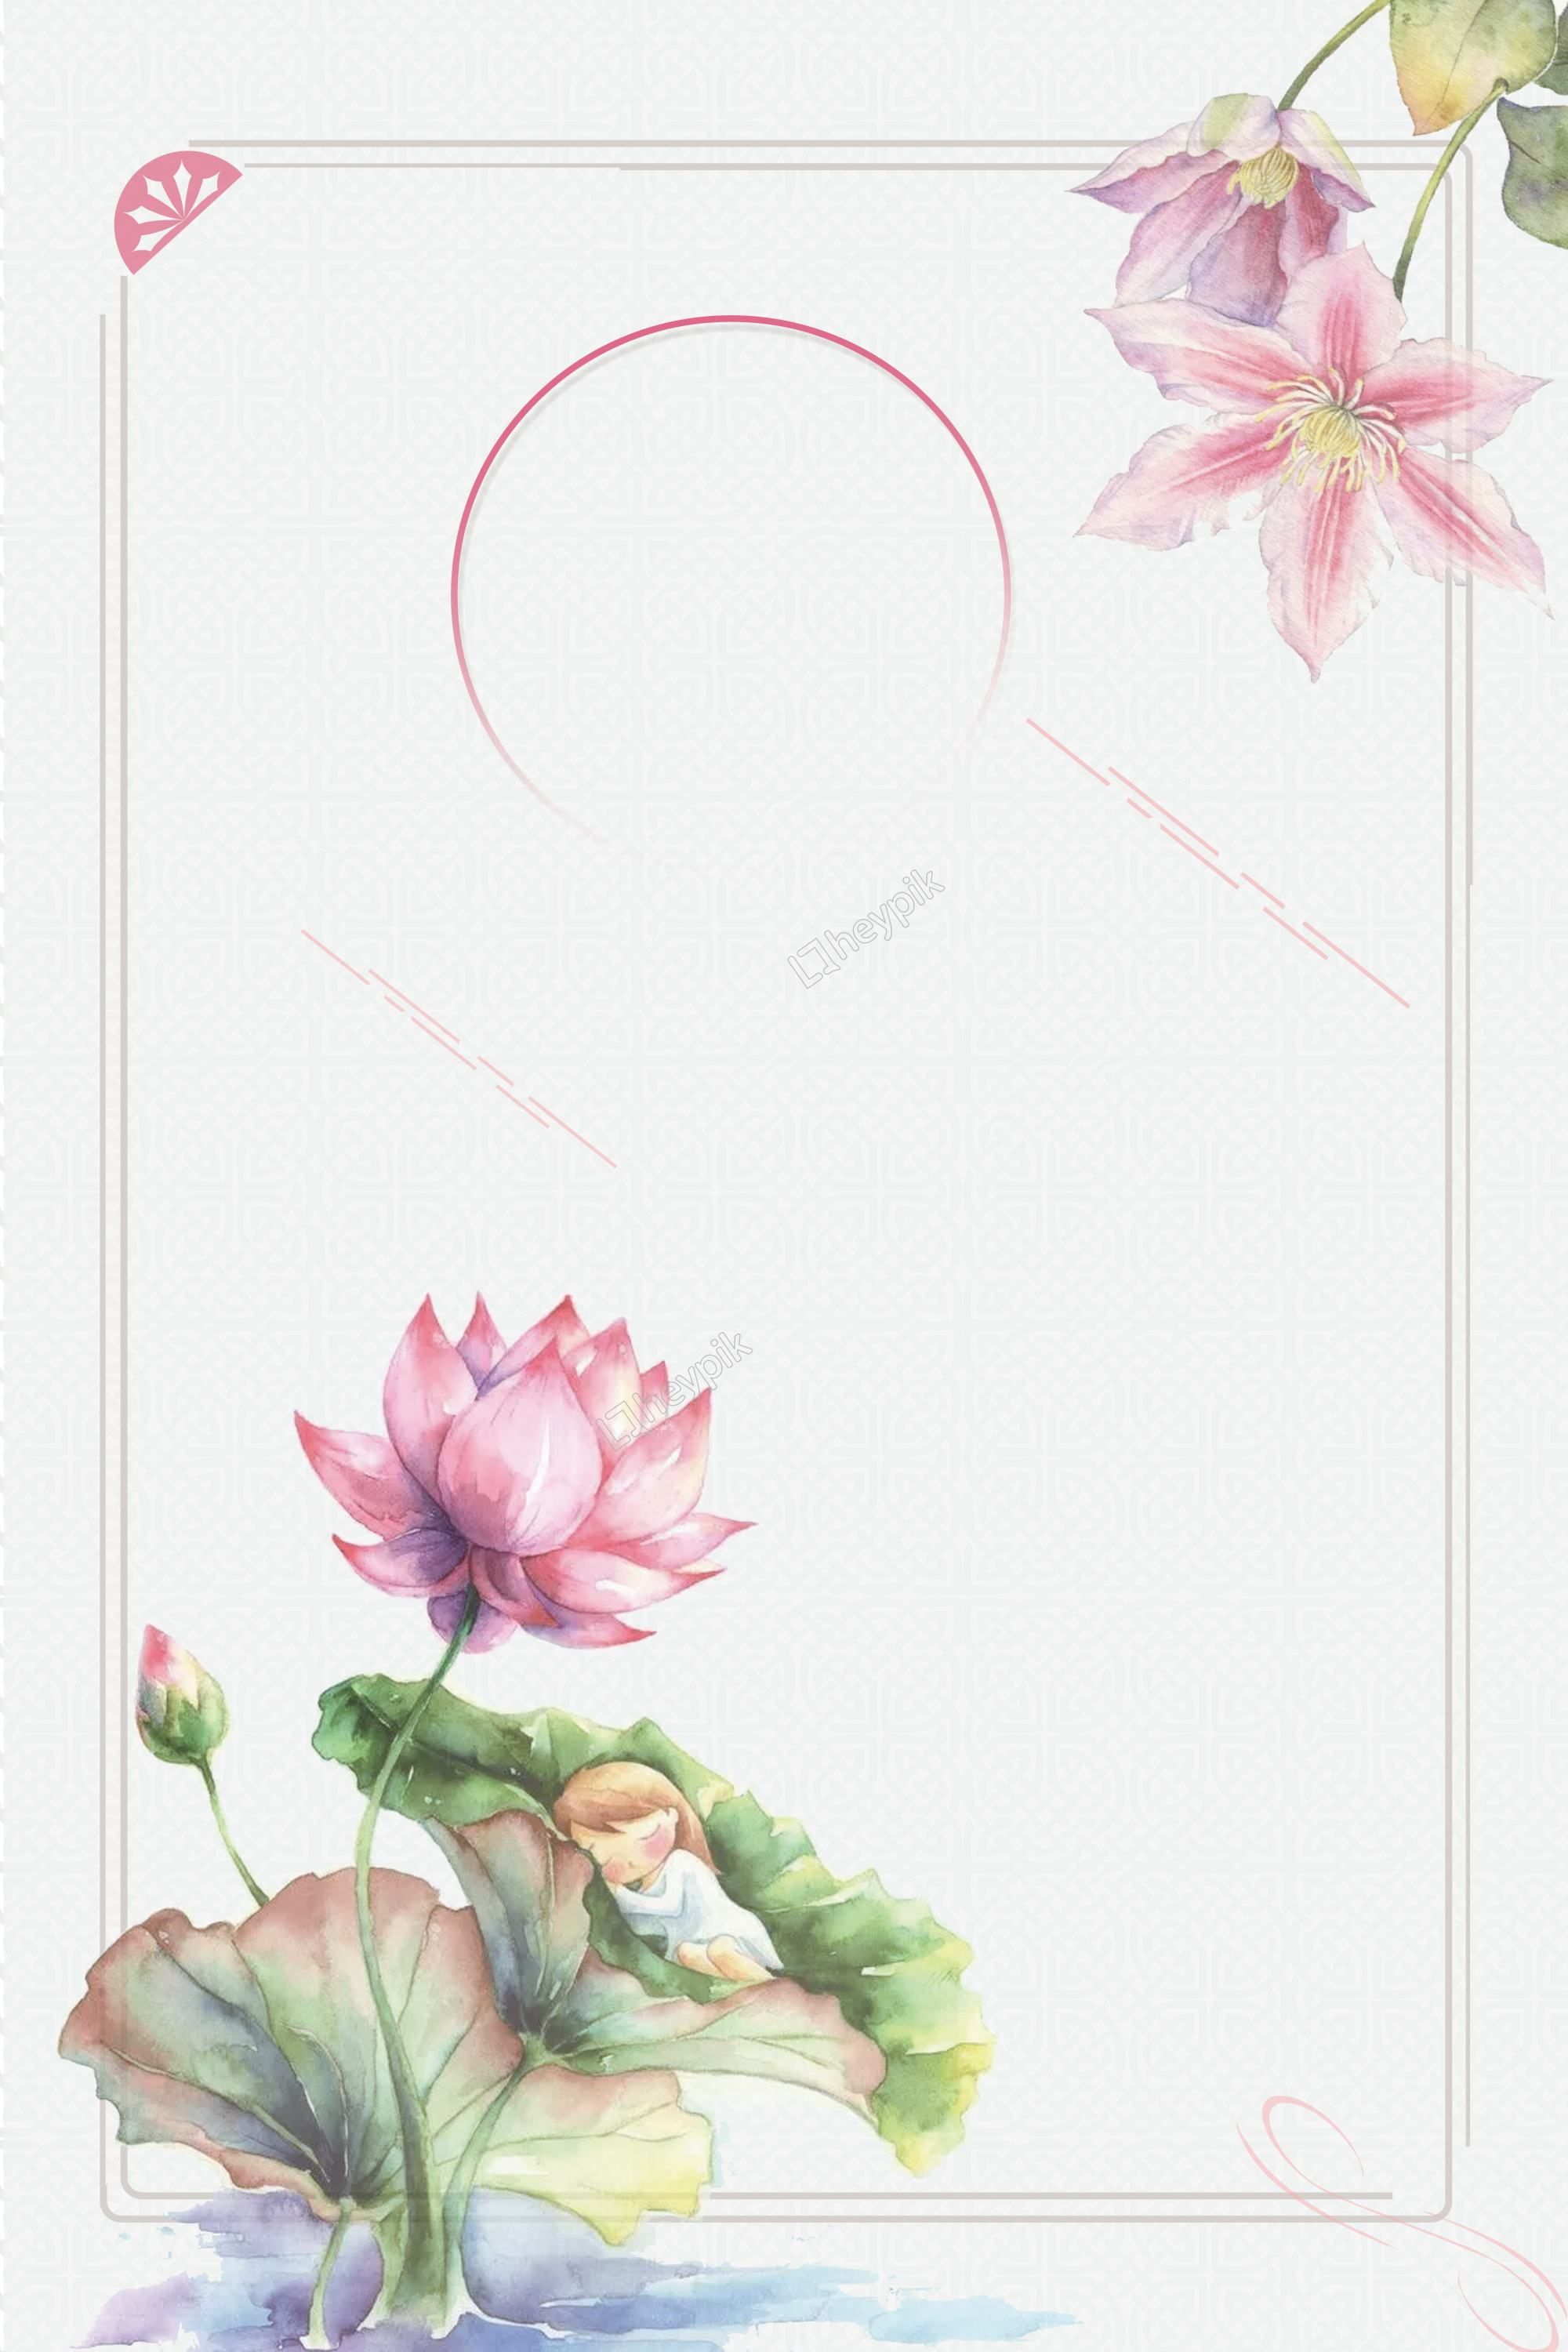 Ancient Style Painted Lotus Border Poster Background Design Hd